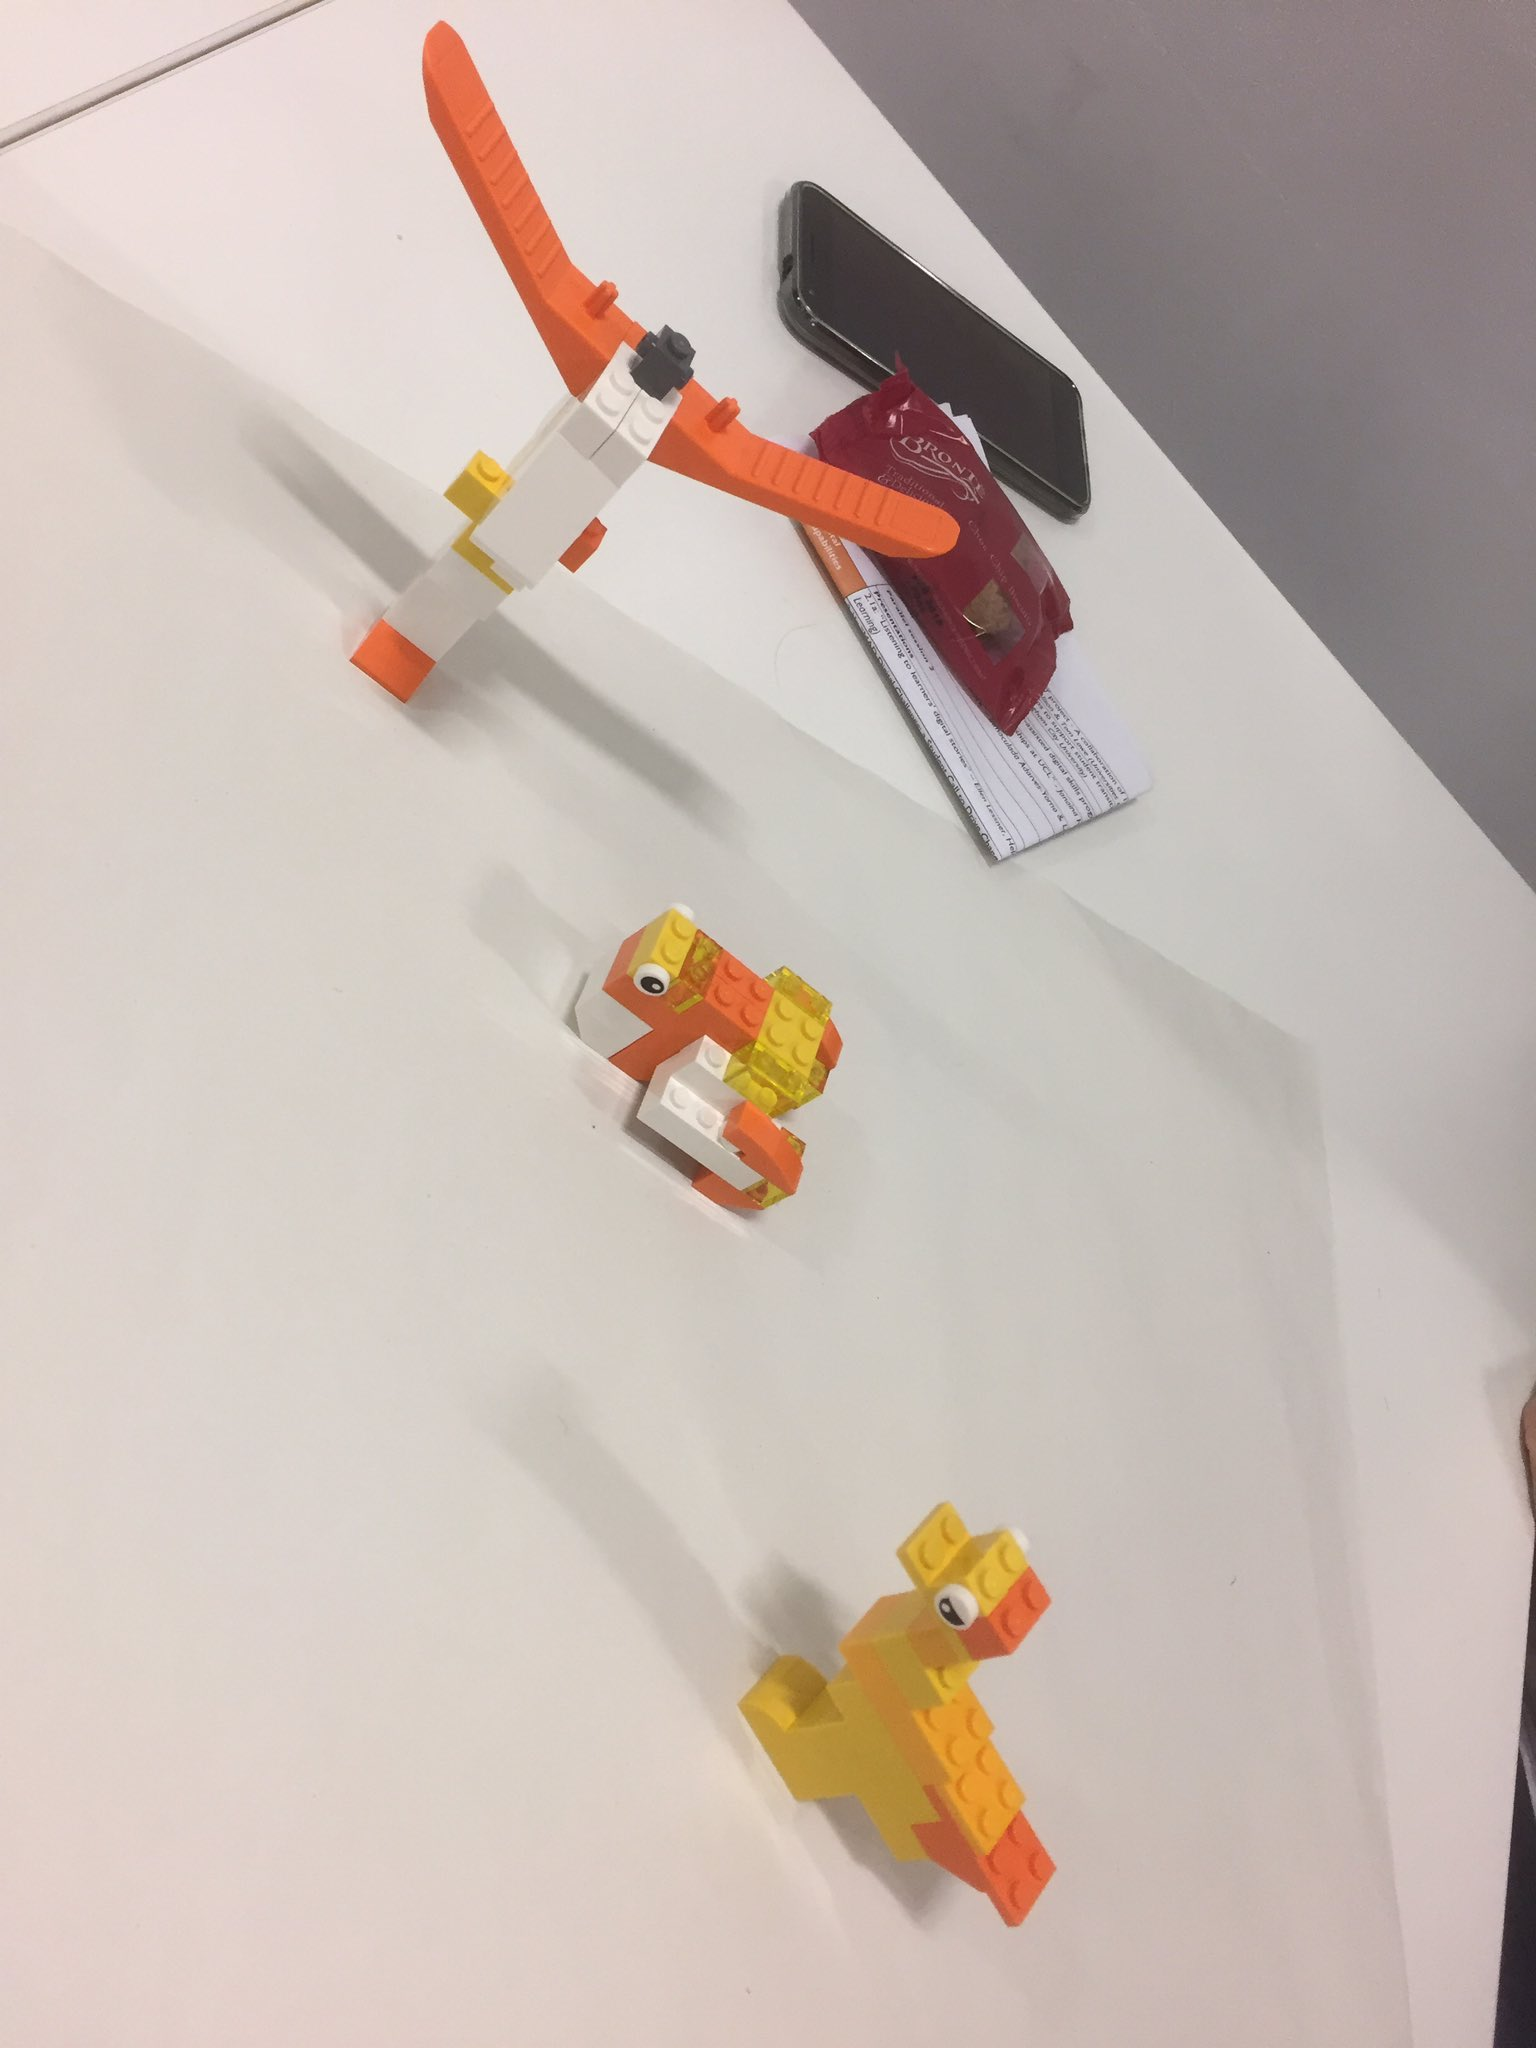 Prize for the most creative Lego build goes to @marcuselliott for his T&L duck & angel of the south for @Jisc #digitalstudent #jiscCAN17 https://t.co/DMnSC05w2f